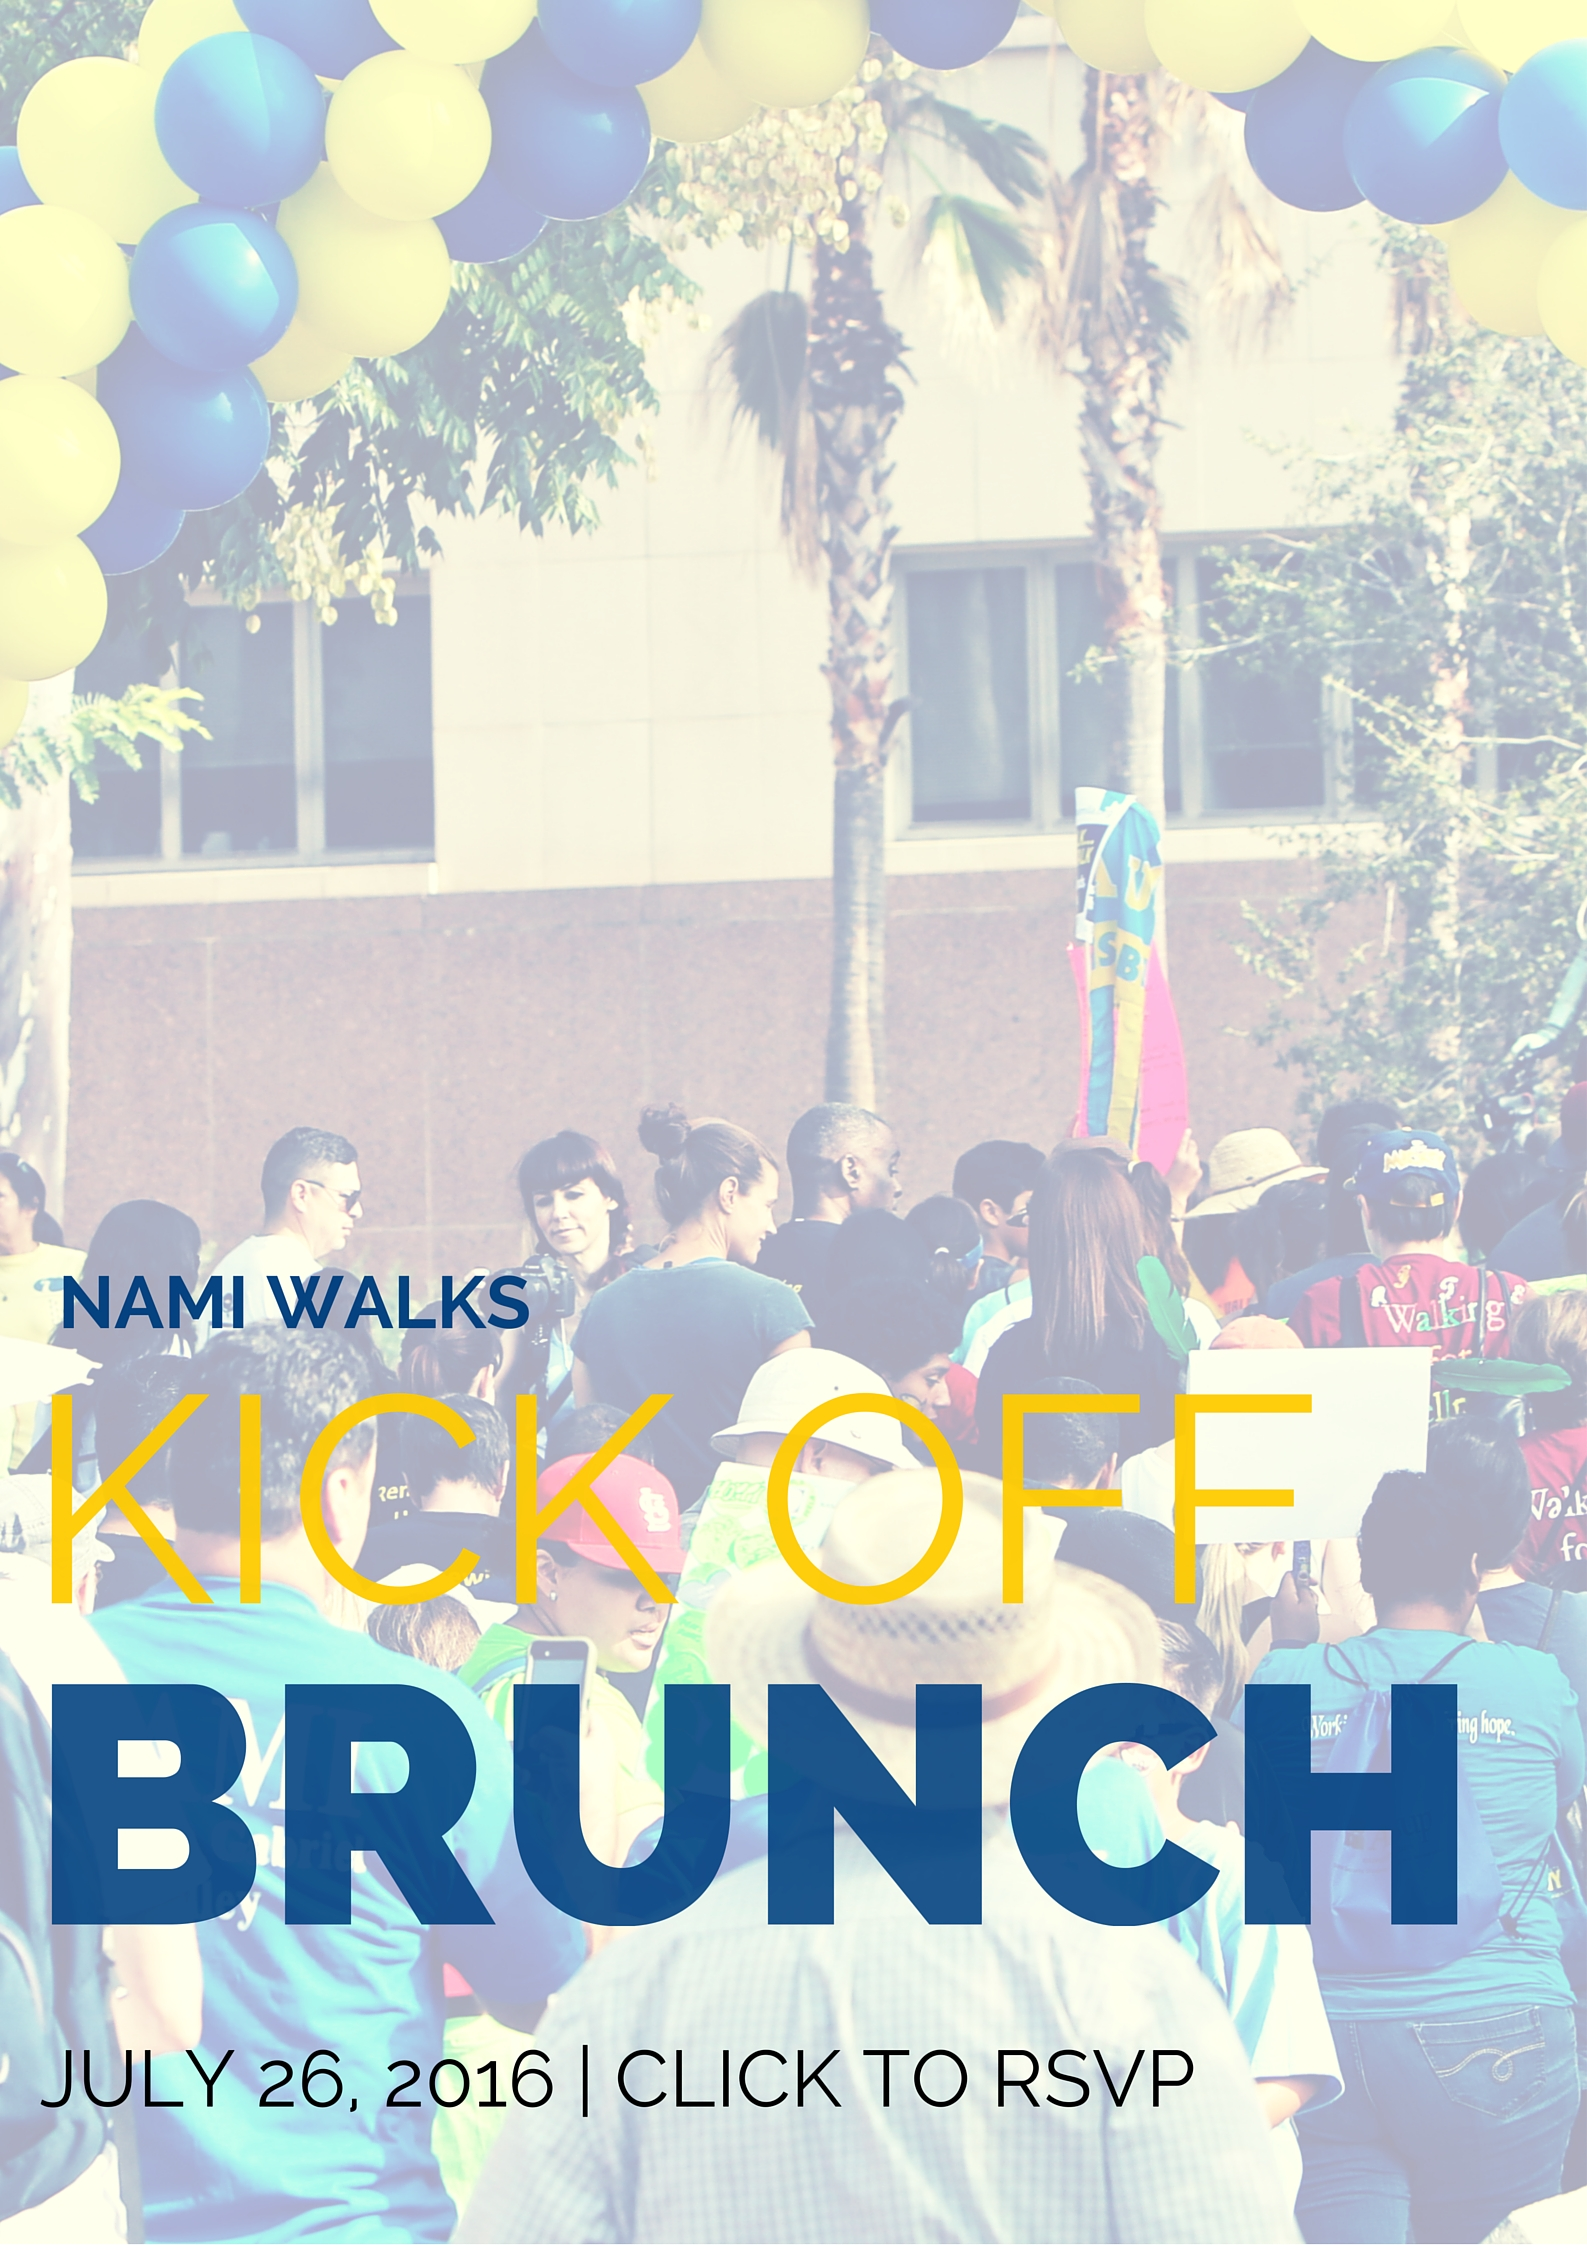 nami_walk_brunch.jpg